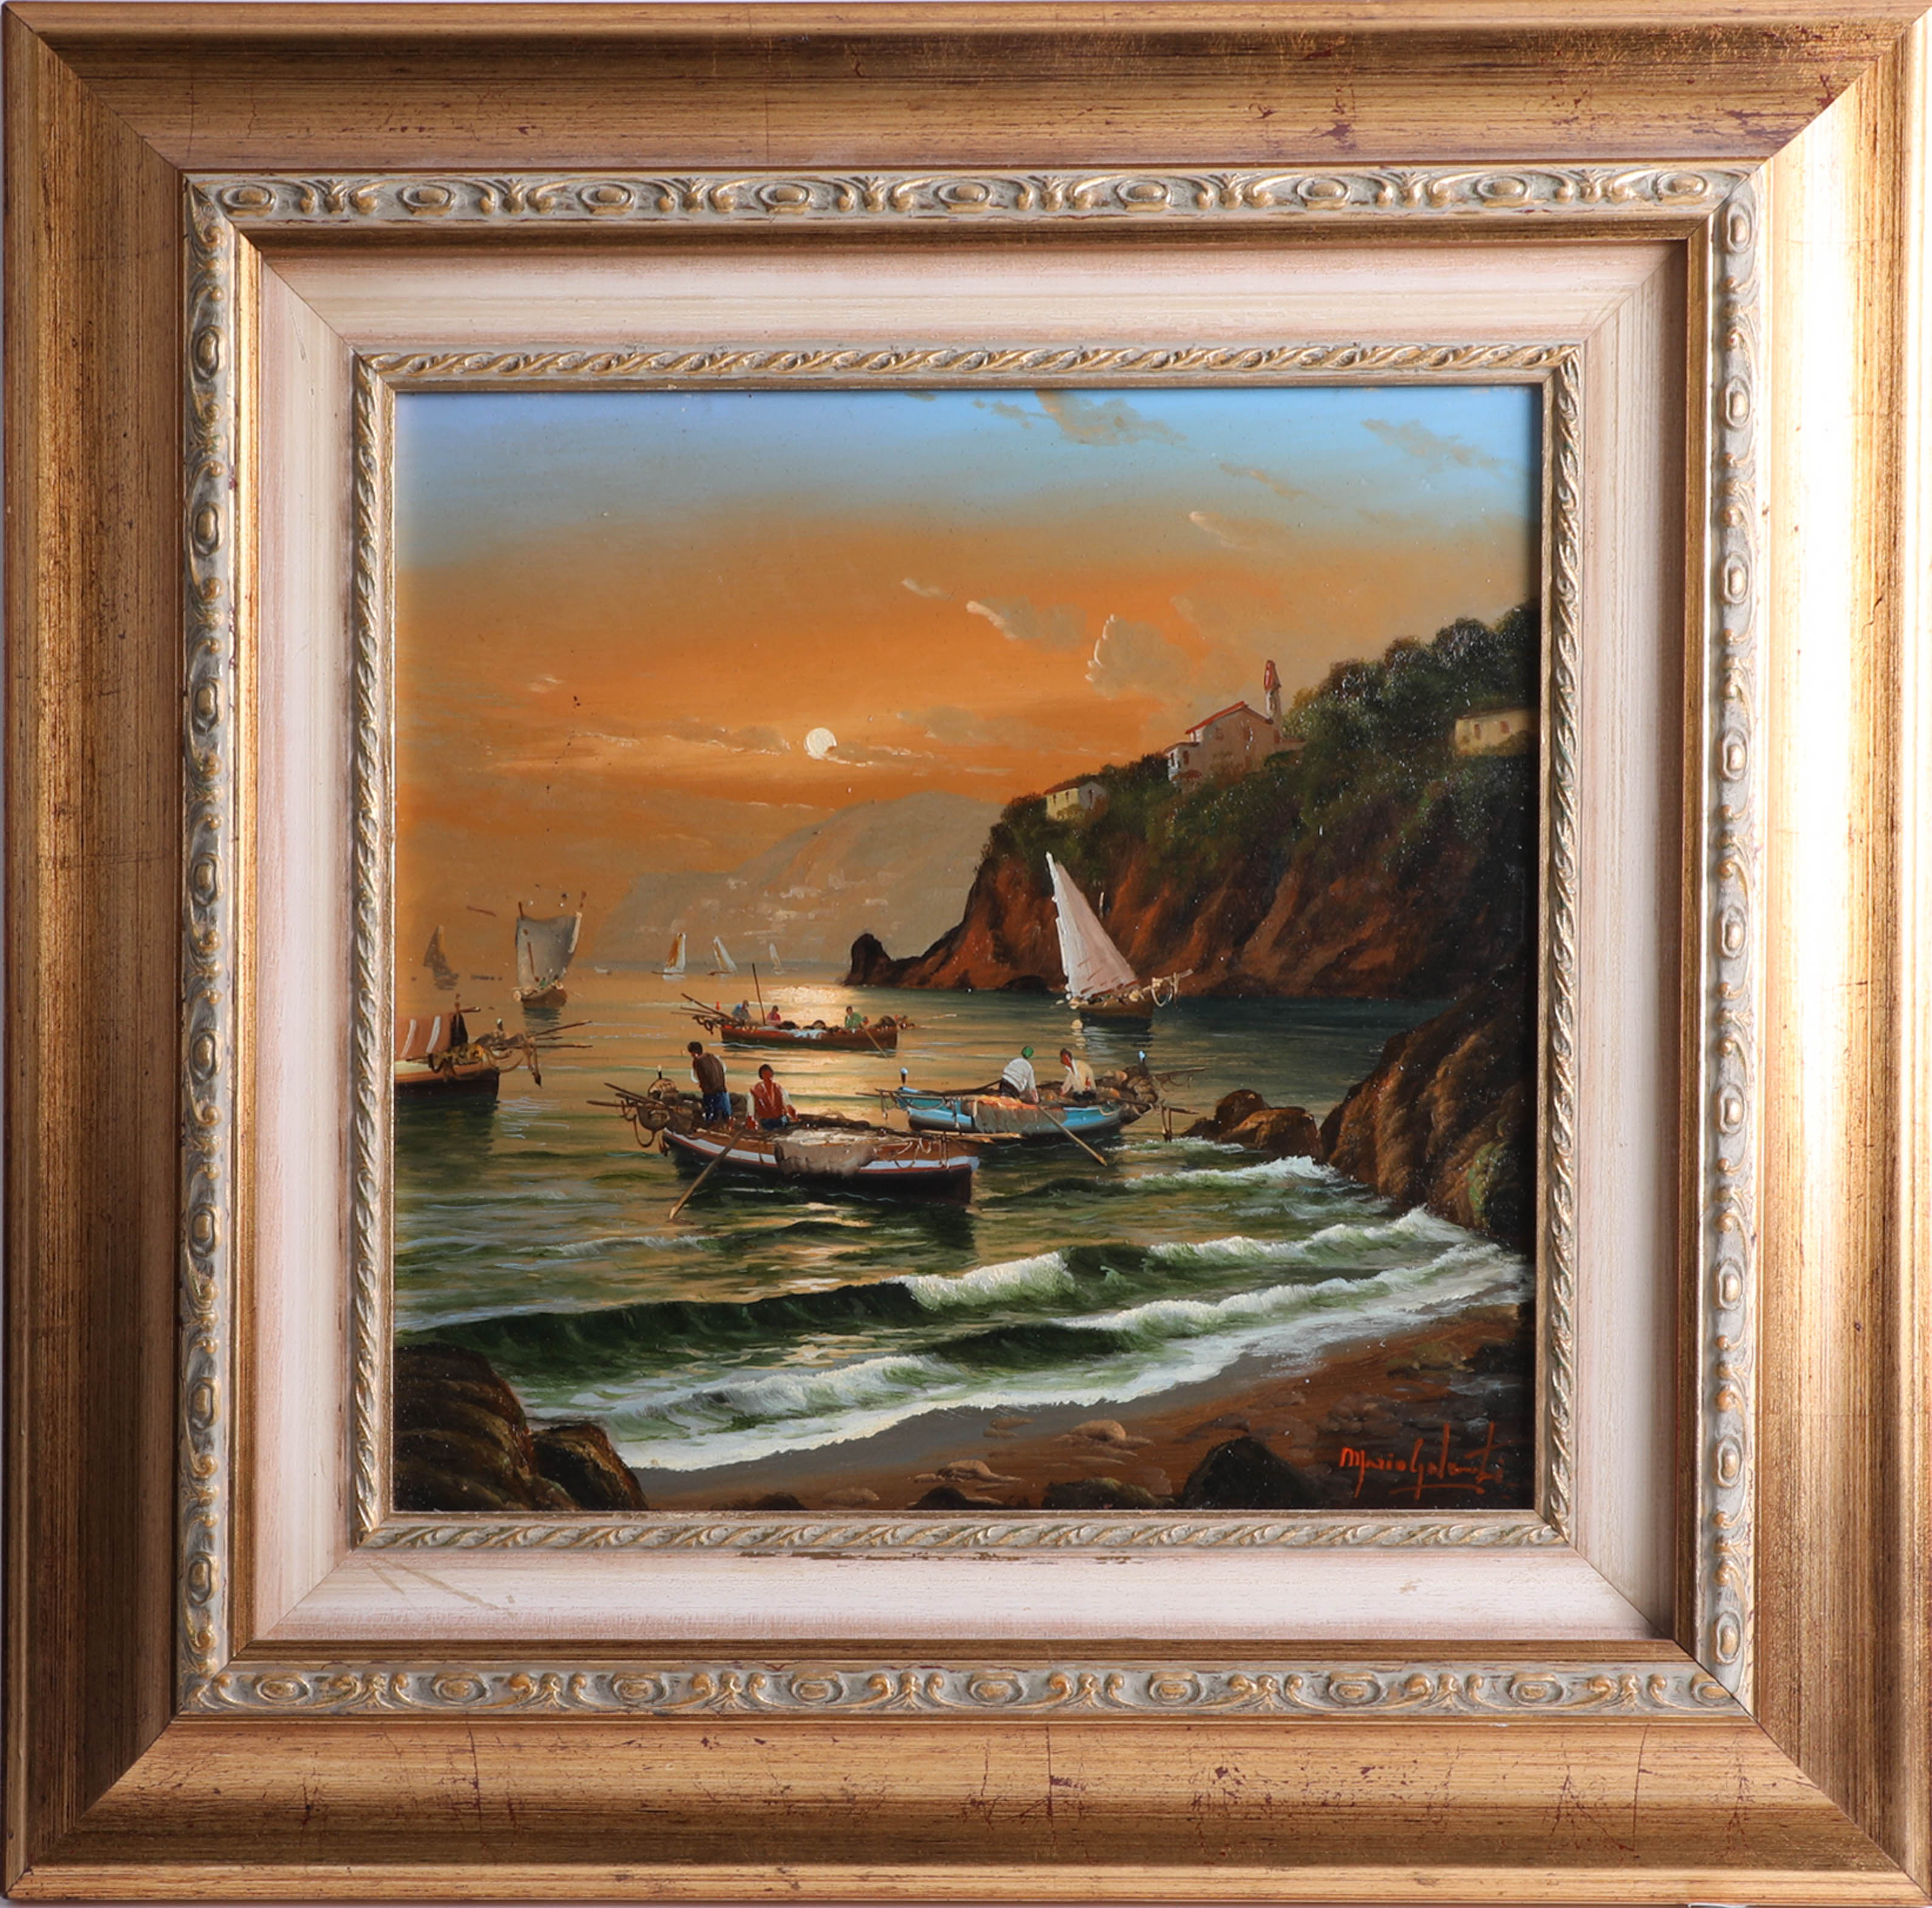 Lot 014 - Mario Galanti (1923-1998, Italian) signed oil on board, 'Fishing boats' framed, 30cm x 30cm.